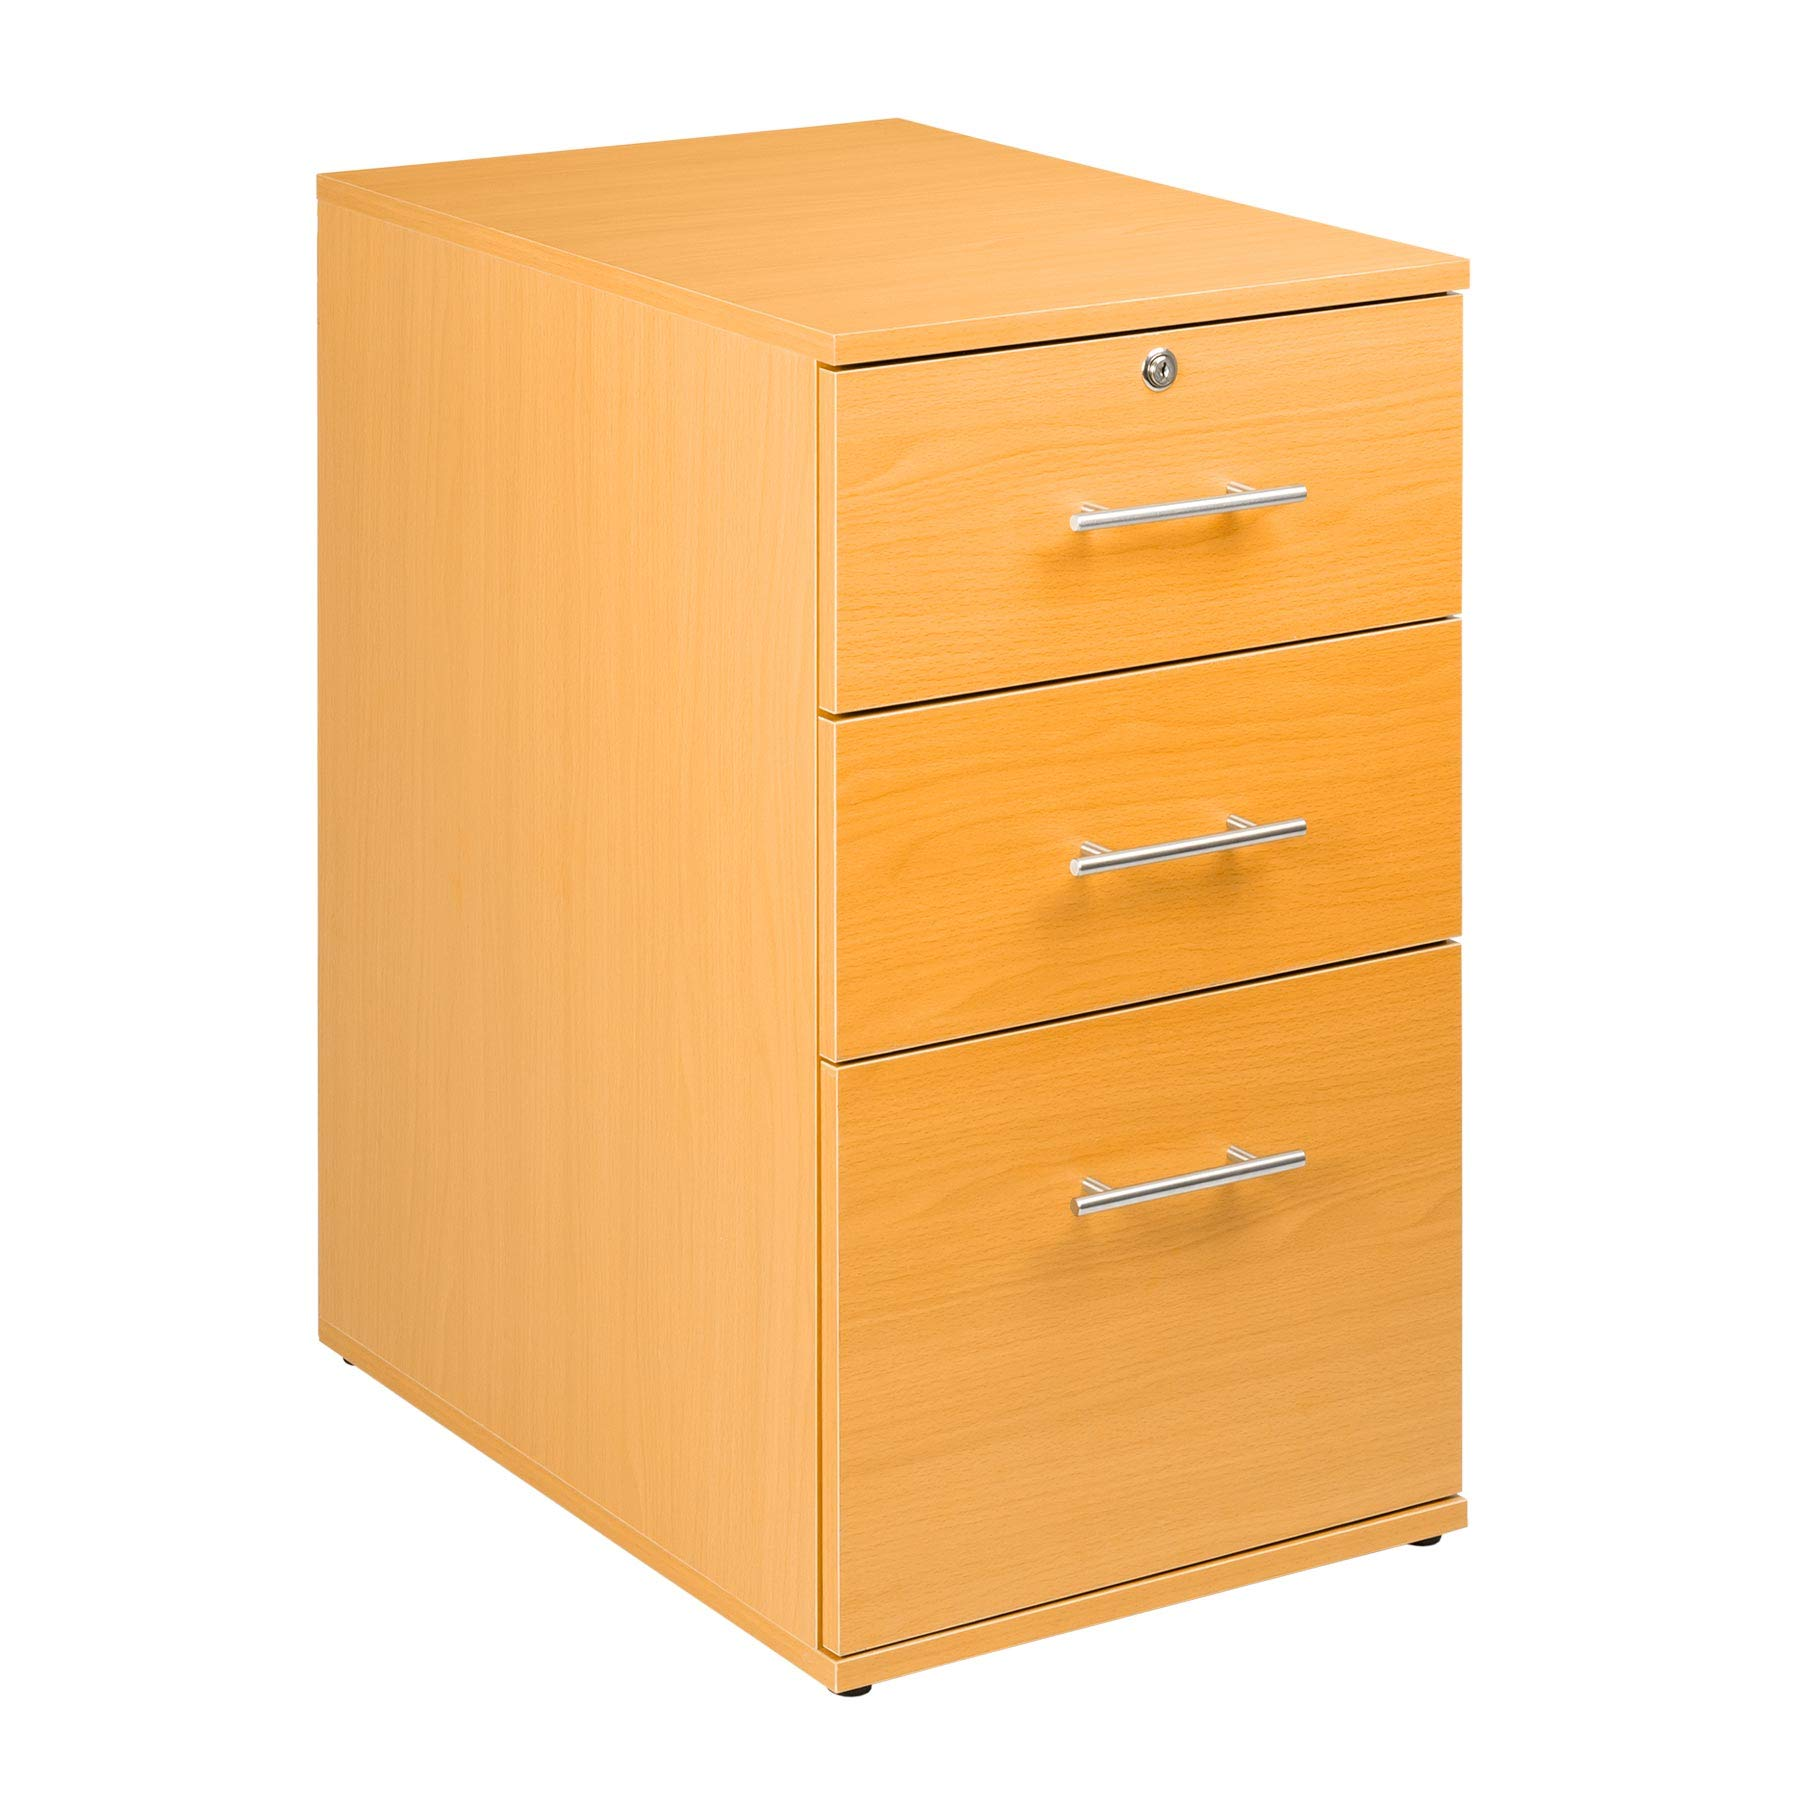 Office 3 Drawer Lockable Beech Desk Pedestal Unit A4 Suspension File Hangers in Bottom Drawer by MMT Furniture Designs Ltd